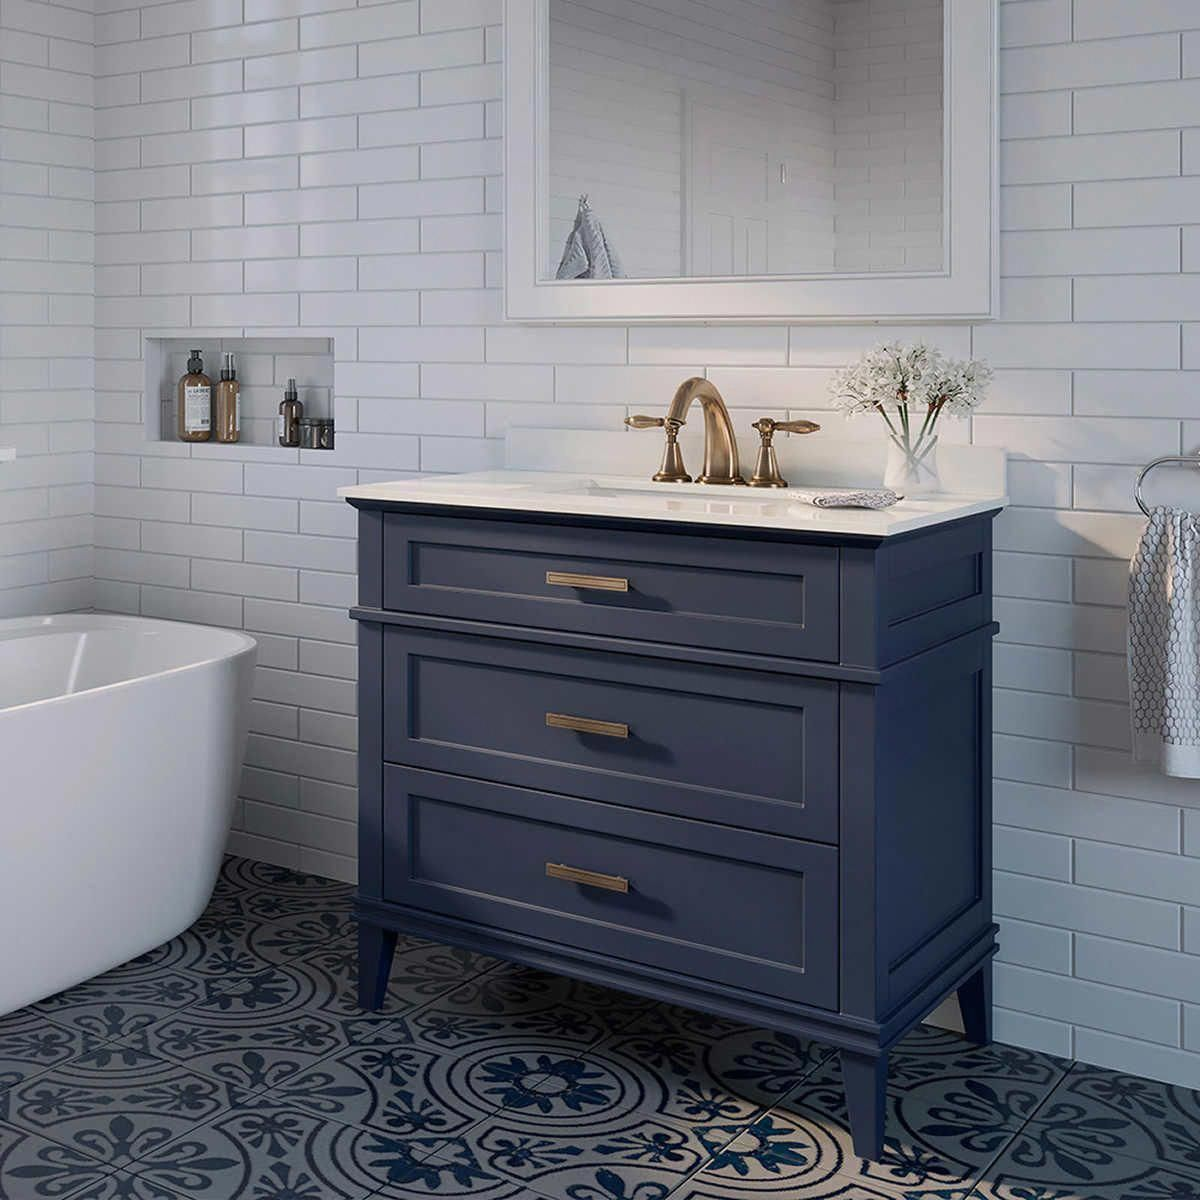 36 Blue Vanity From Costco Ca So Reasonable And Such A Nice Change To Have Colour Bathroomcabinetwhi Blue Vanity Bathroom Remodel Cost Blue Bathroom Vanity